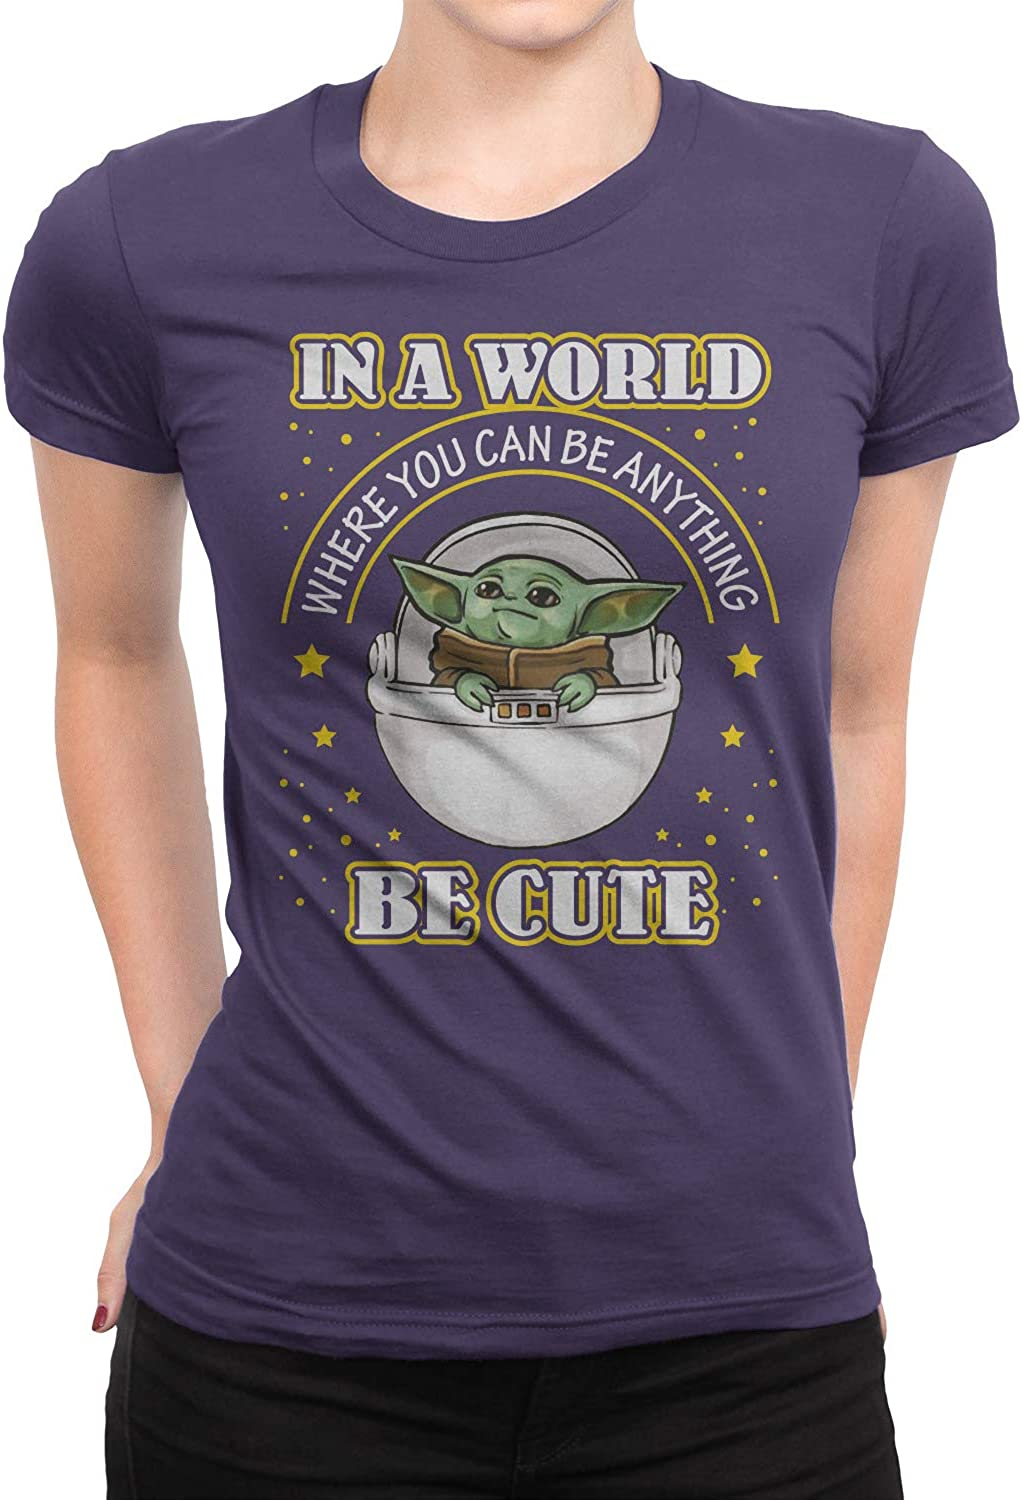 in A World Where You Can Be Anything Be Cute Baby YD T-Shirt